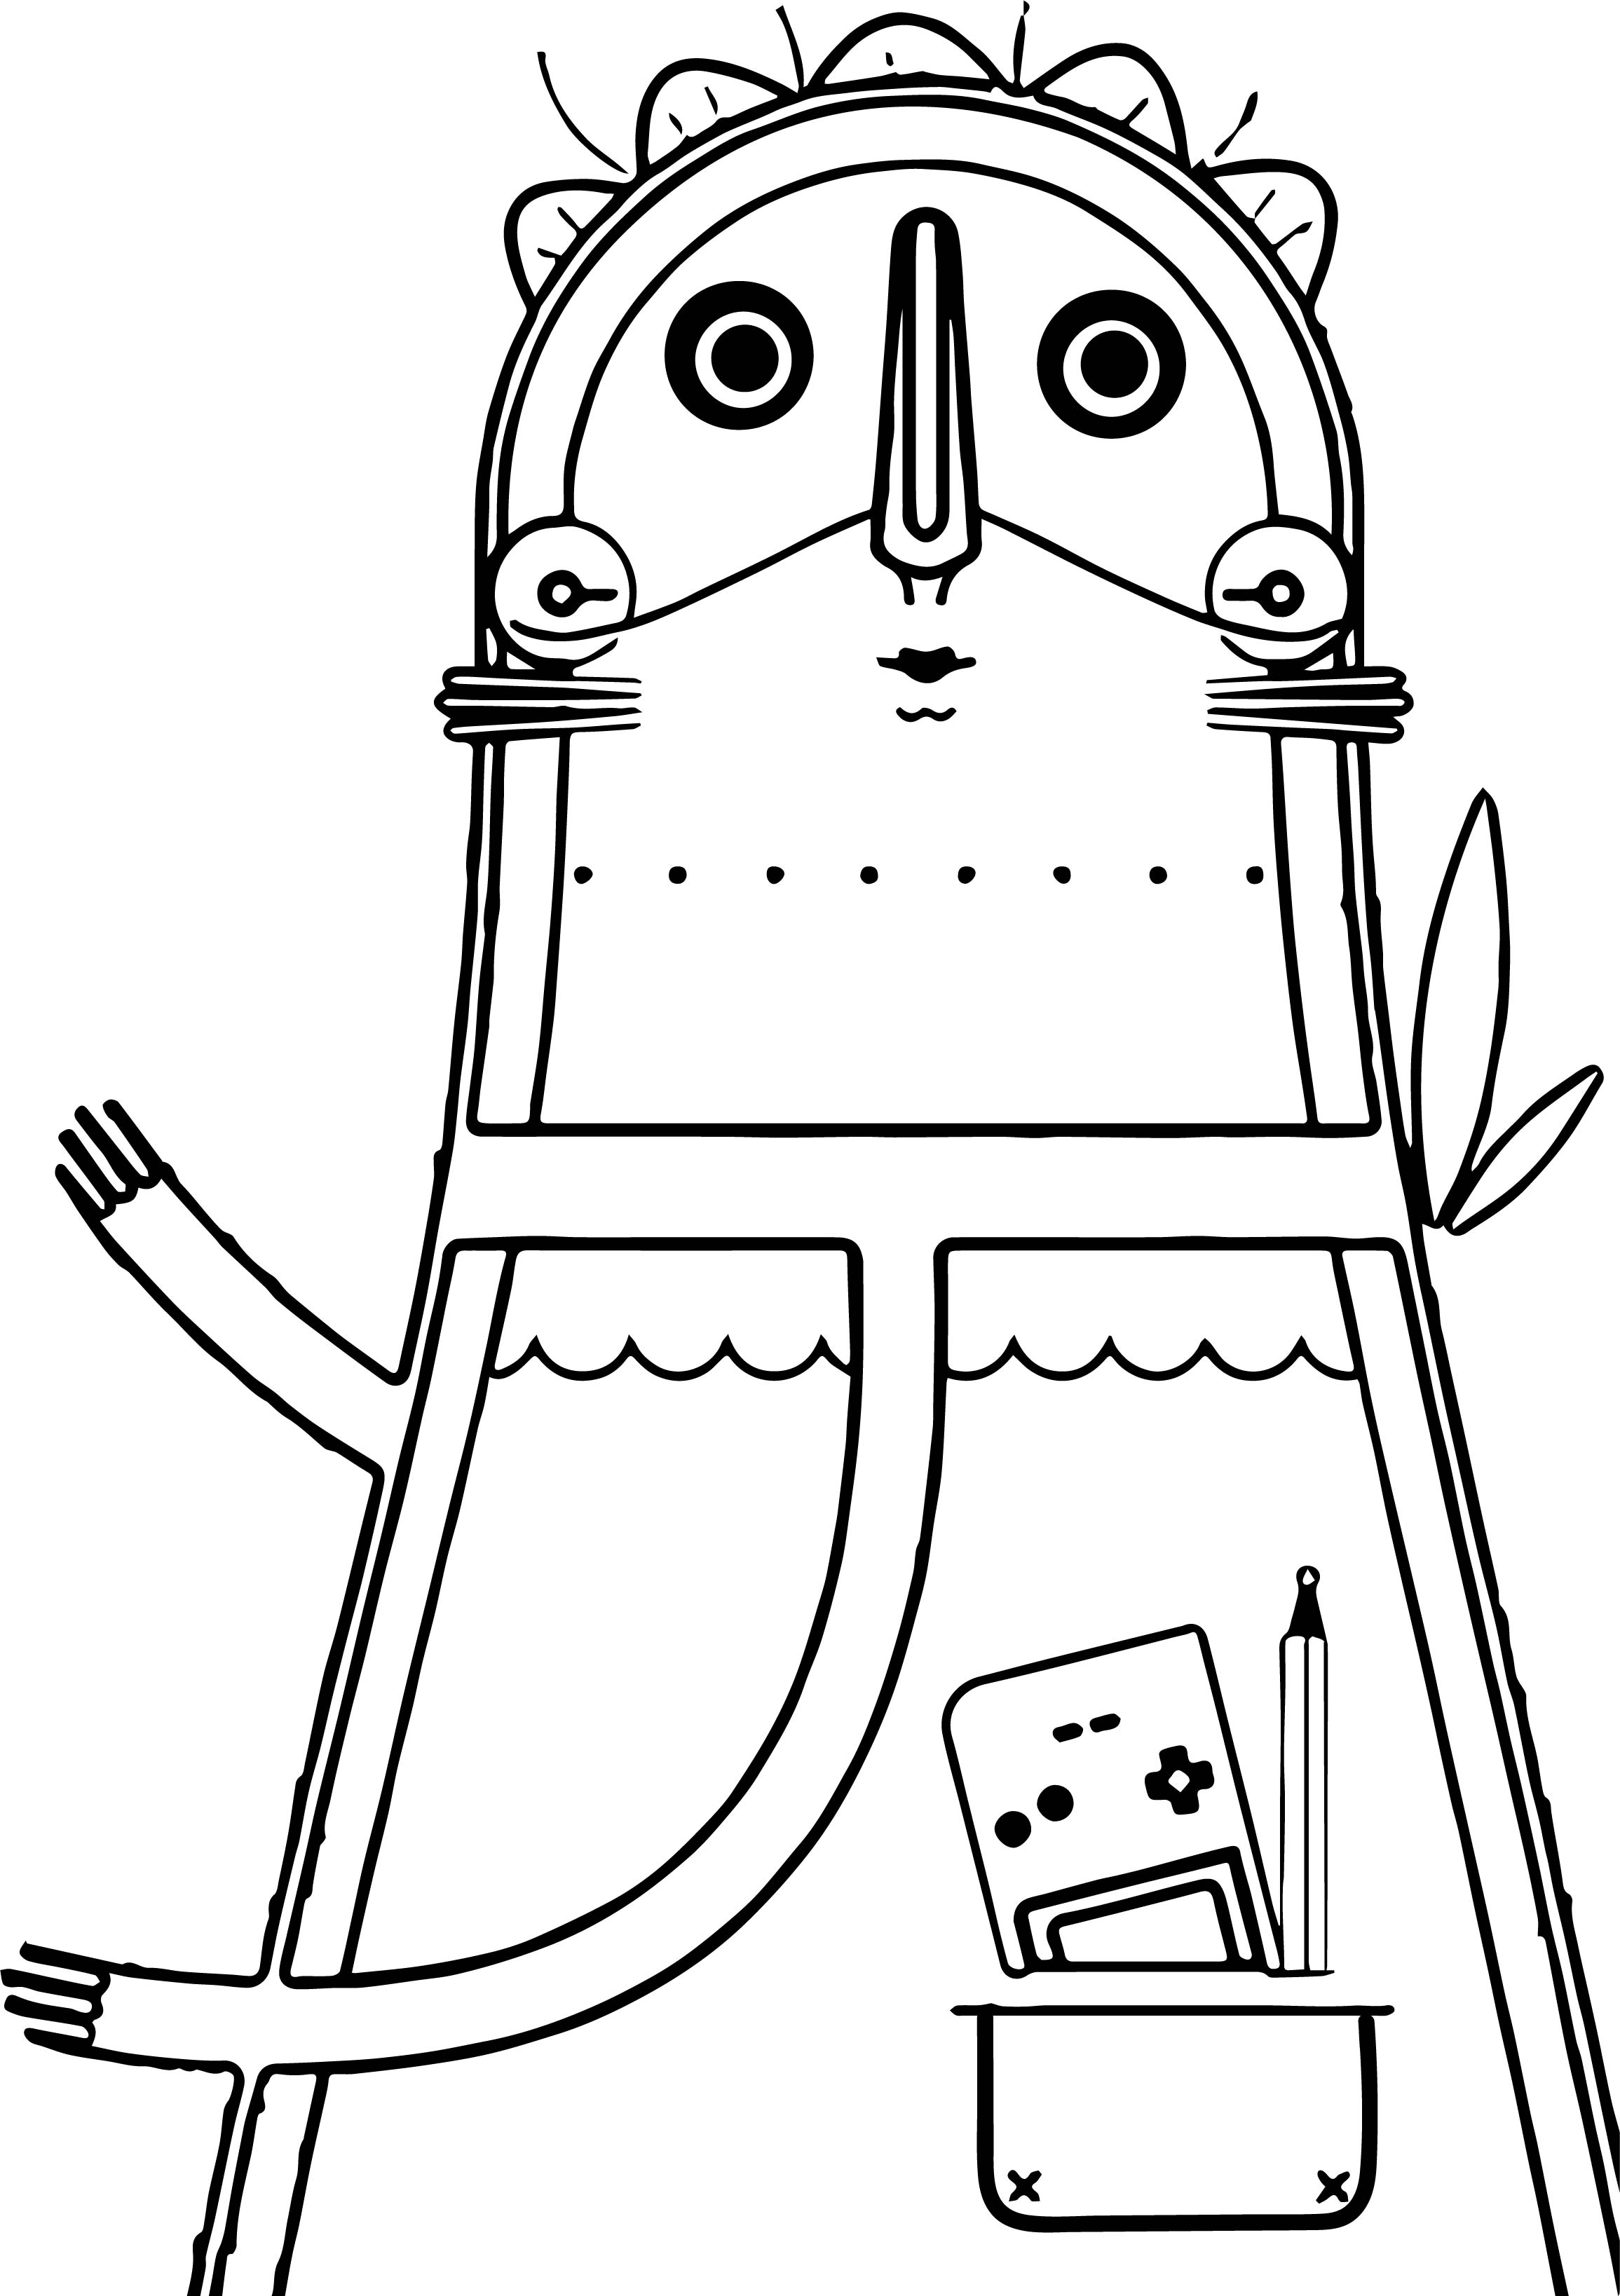 Characters Coloring Page WeColoringPage 23